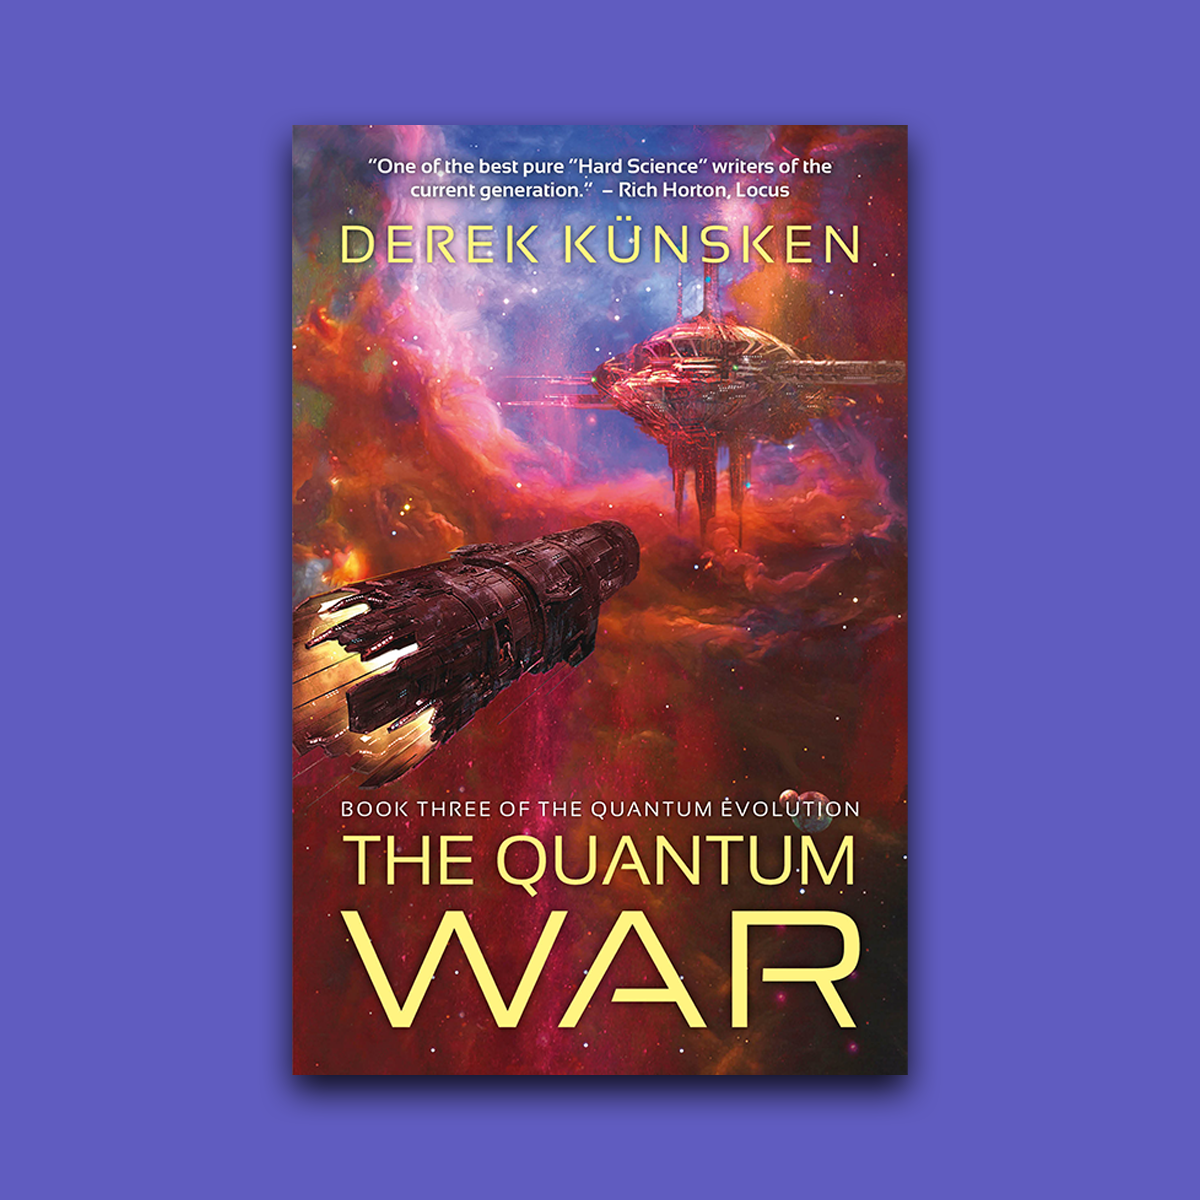 The Quantum War